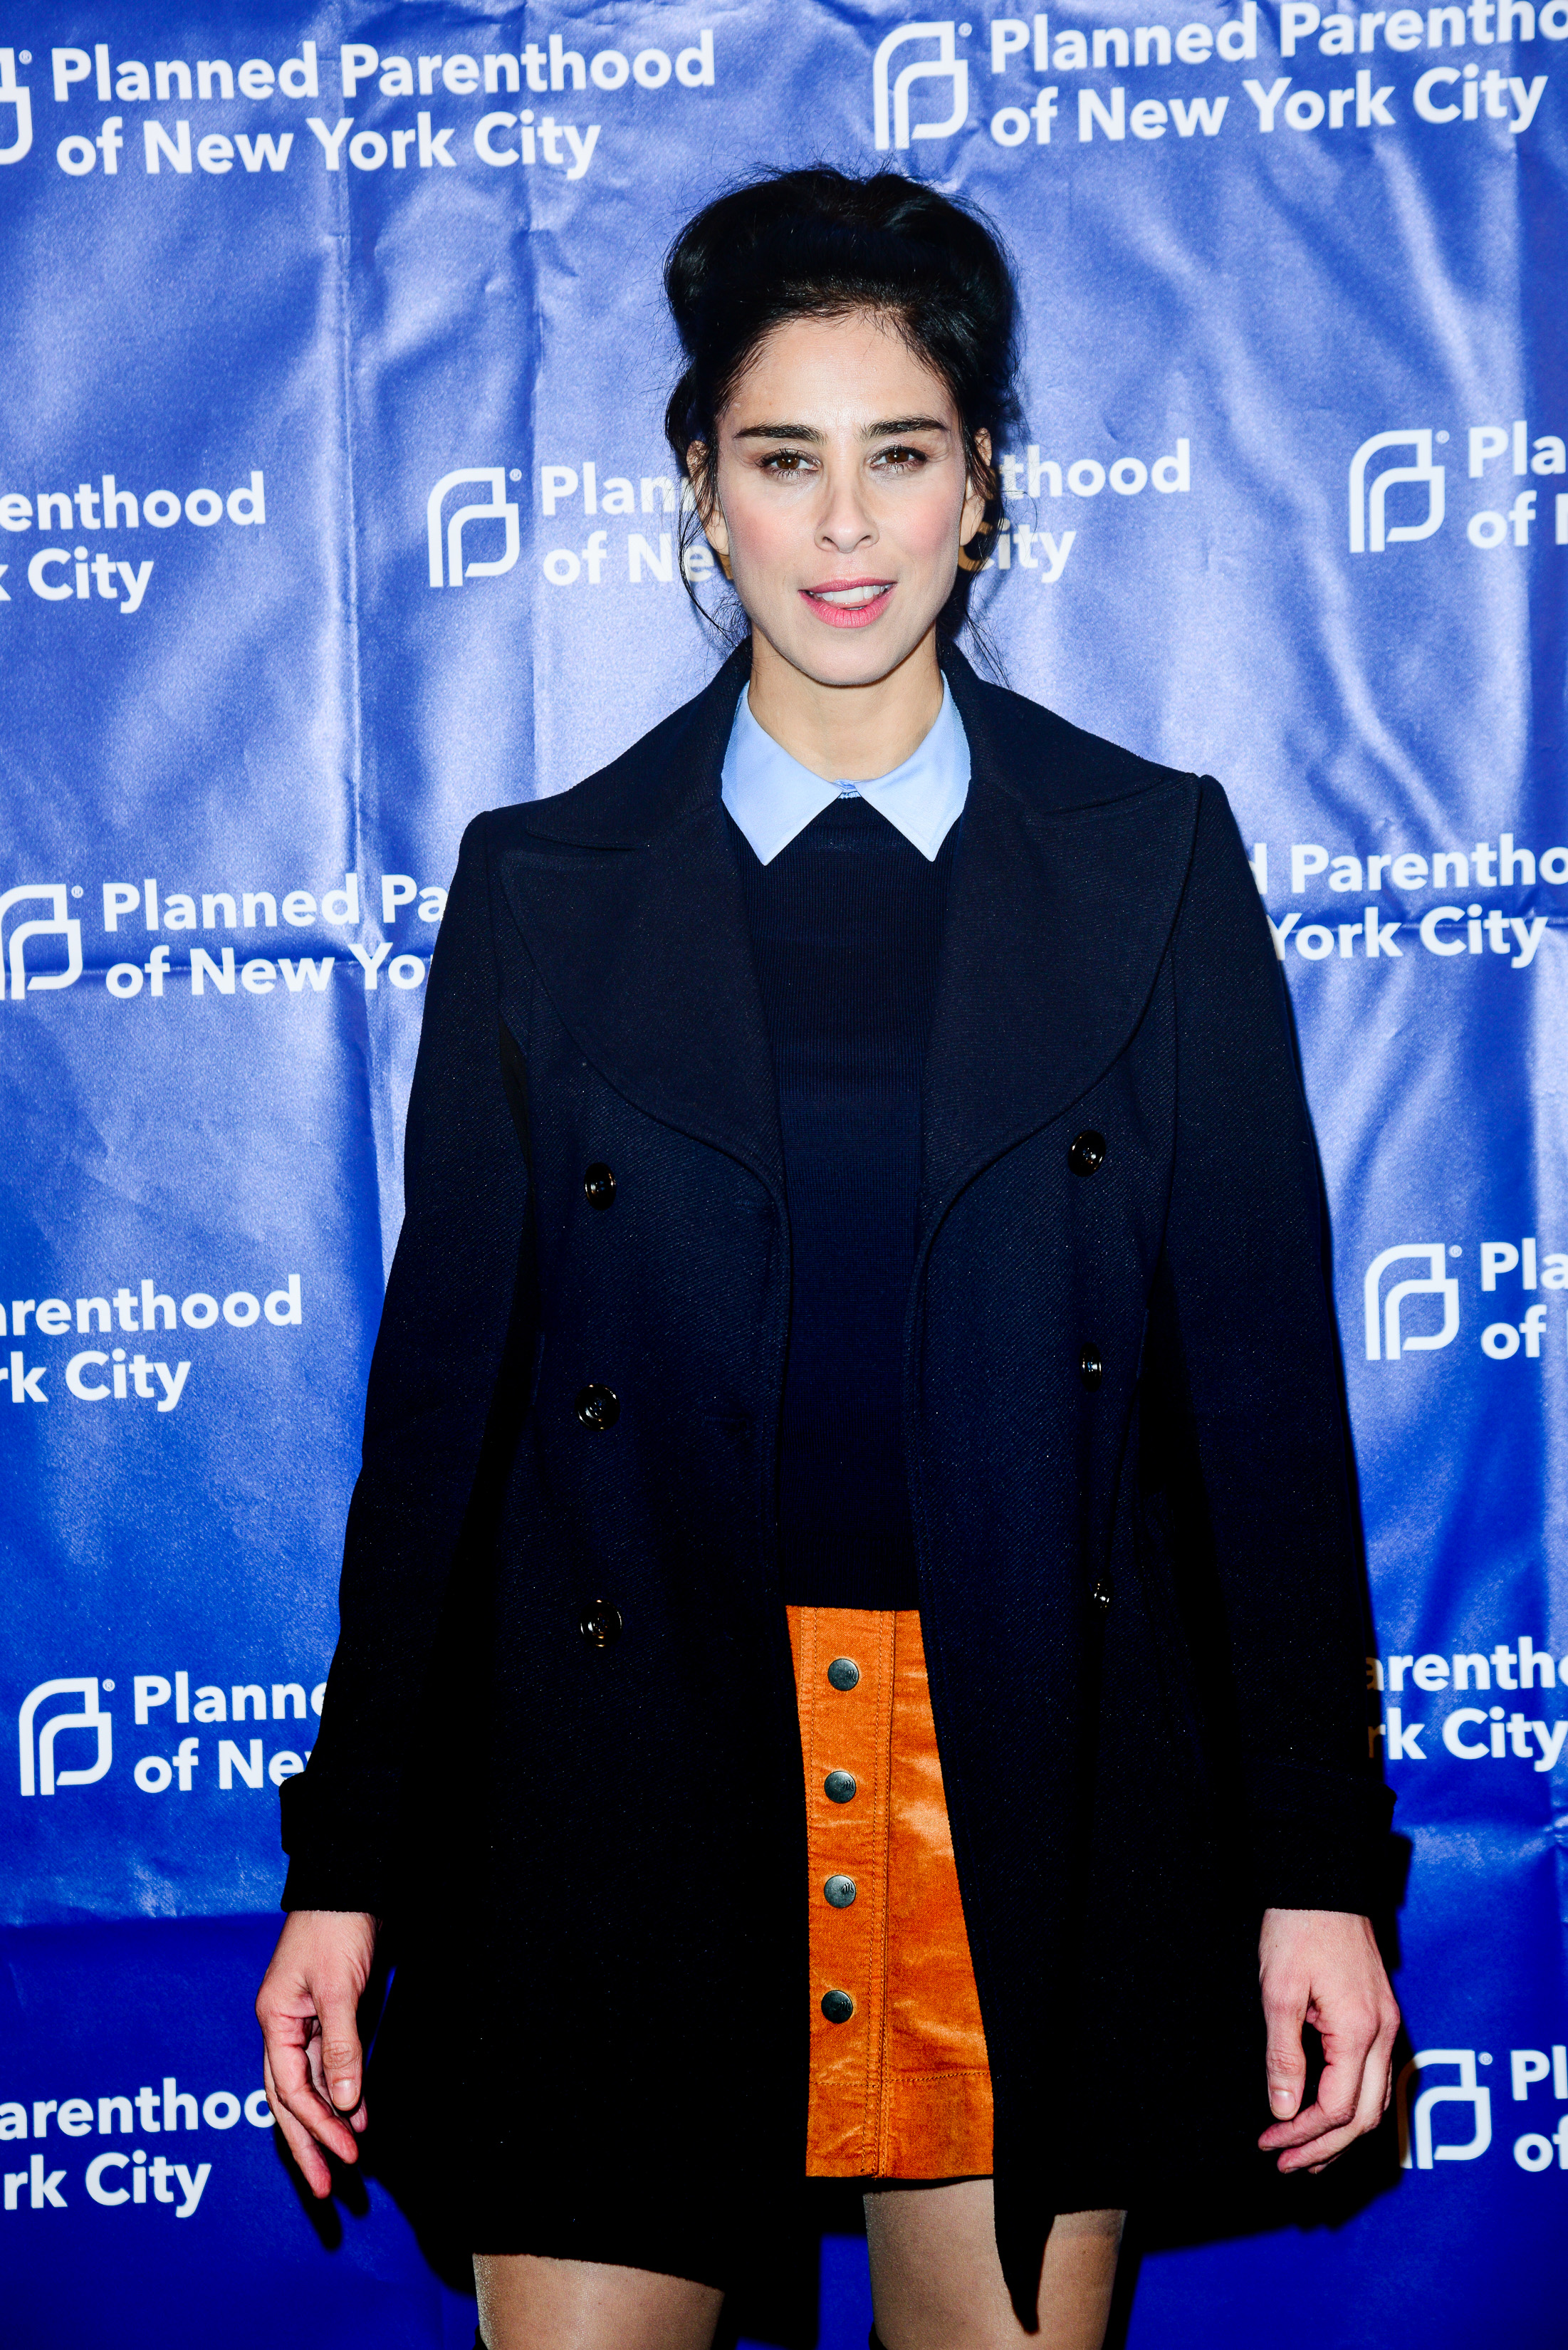 Planned Parenthood Of NYC / Spring Into Action Gala 2019